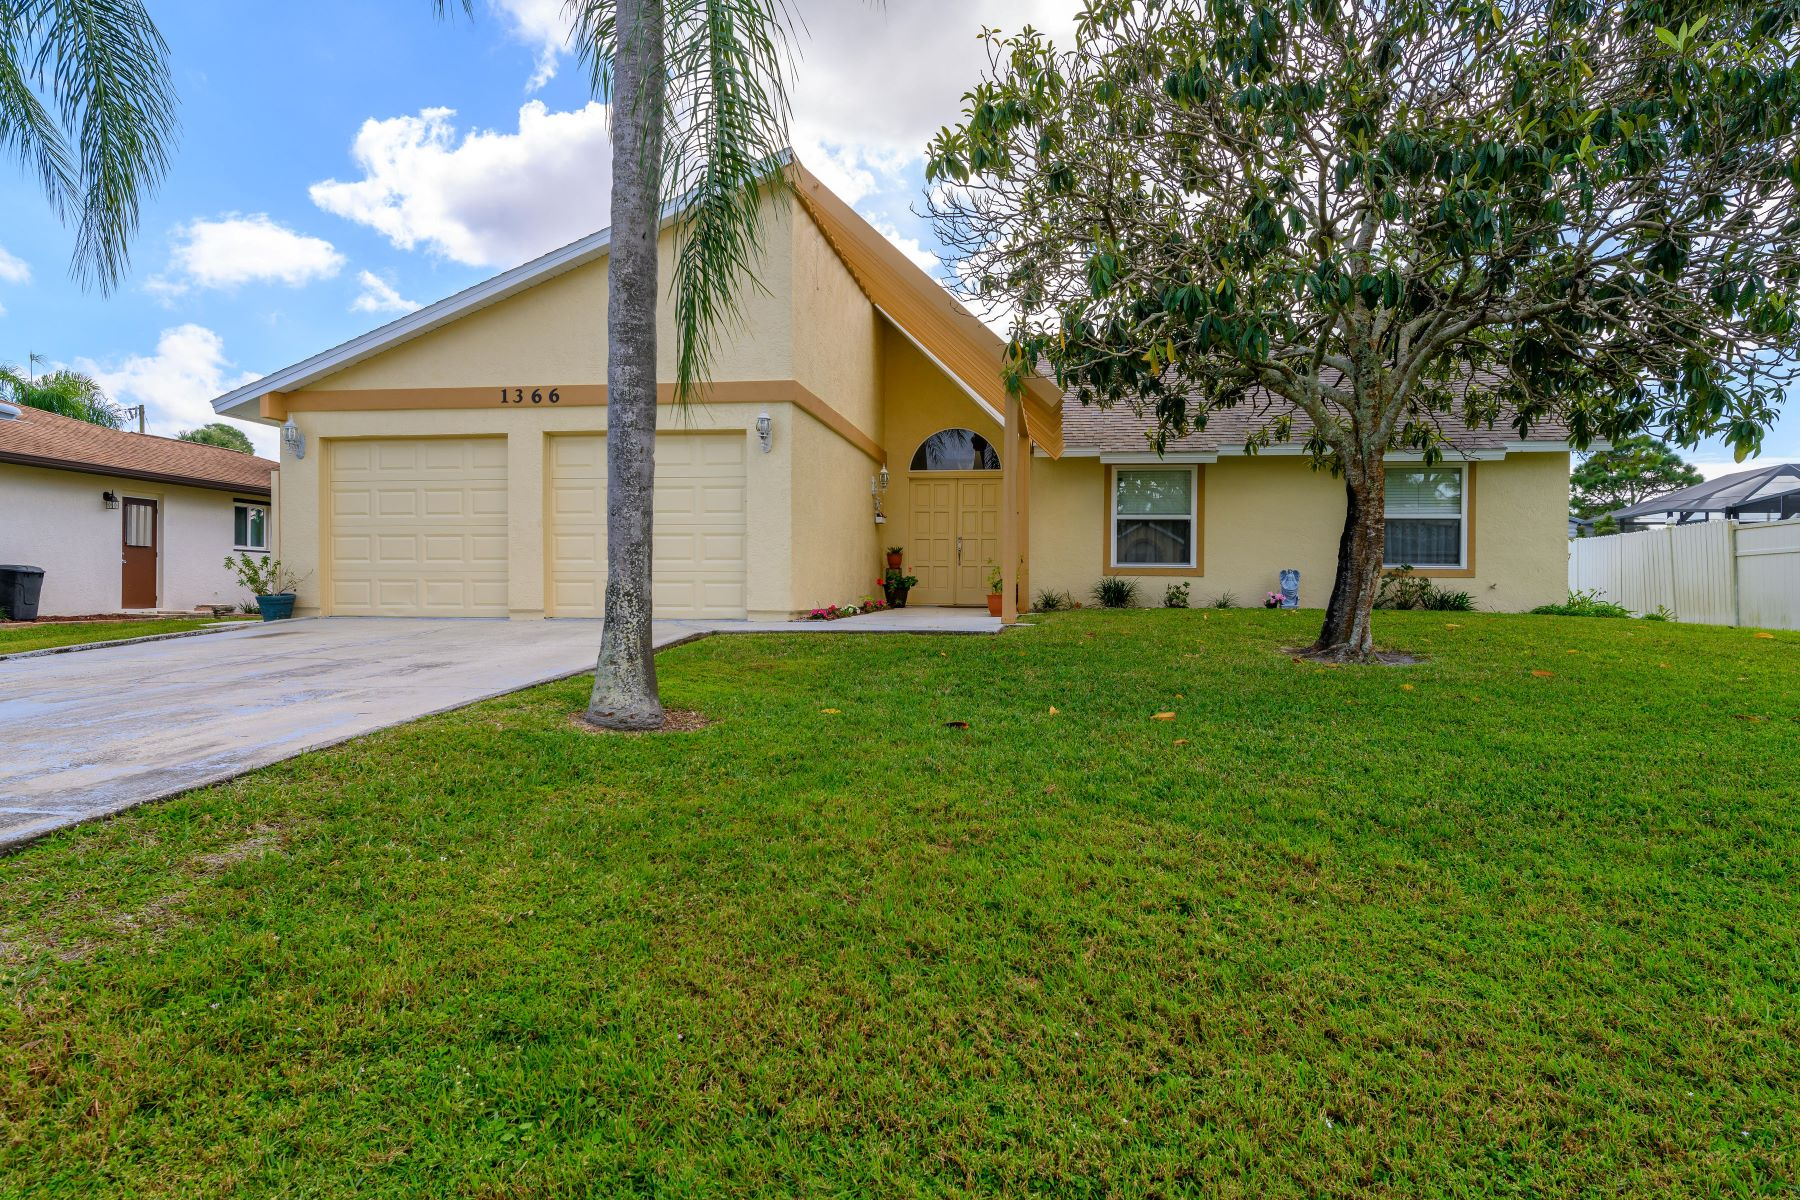 Single Family Homes for Sale at 1366 Lerici Nw Street Palm Bay, Florida 32907 United States